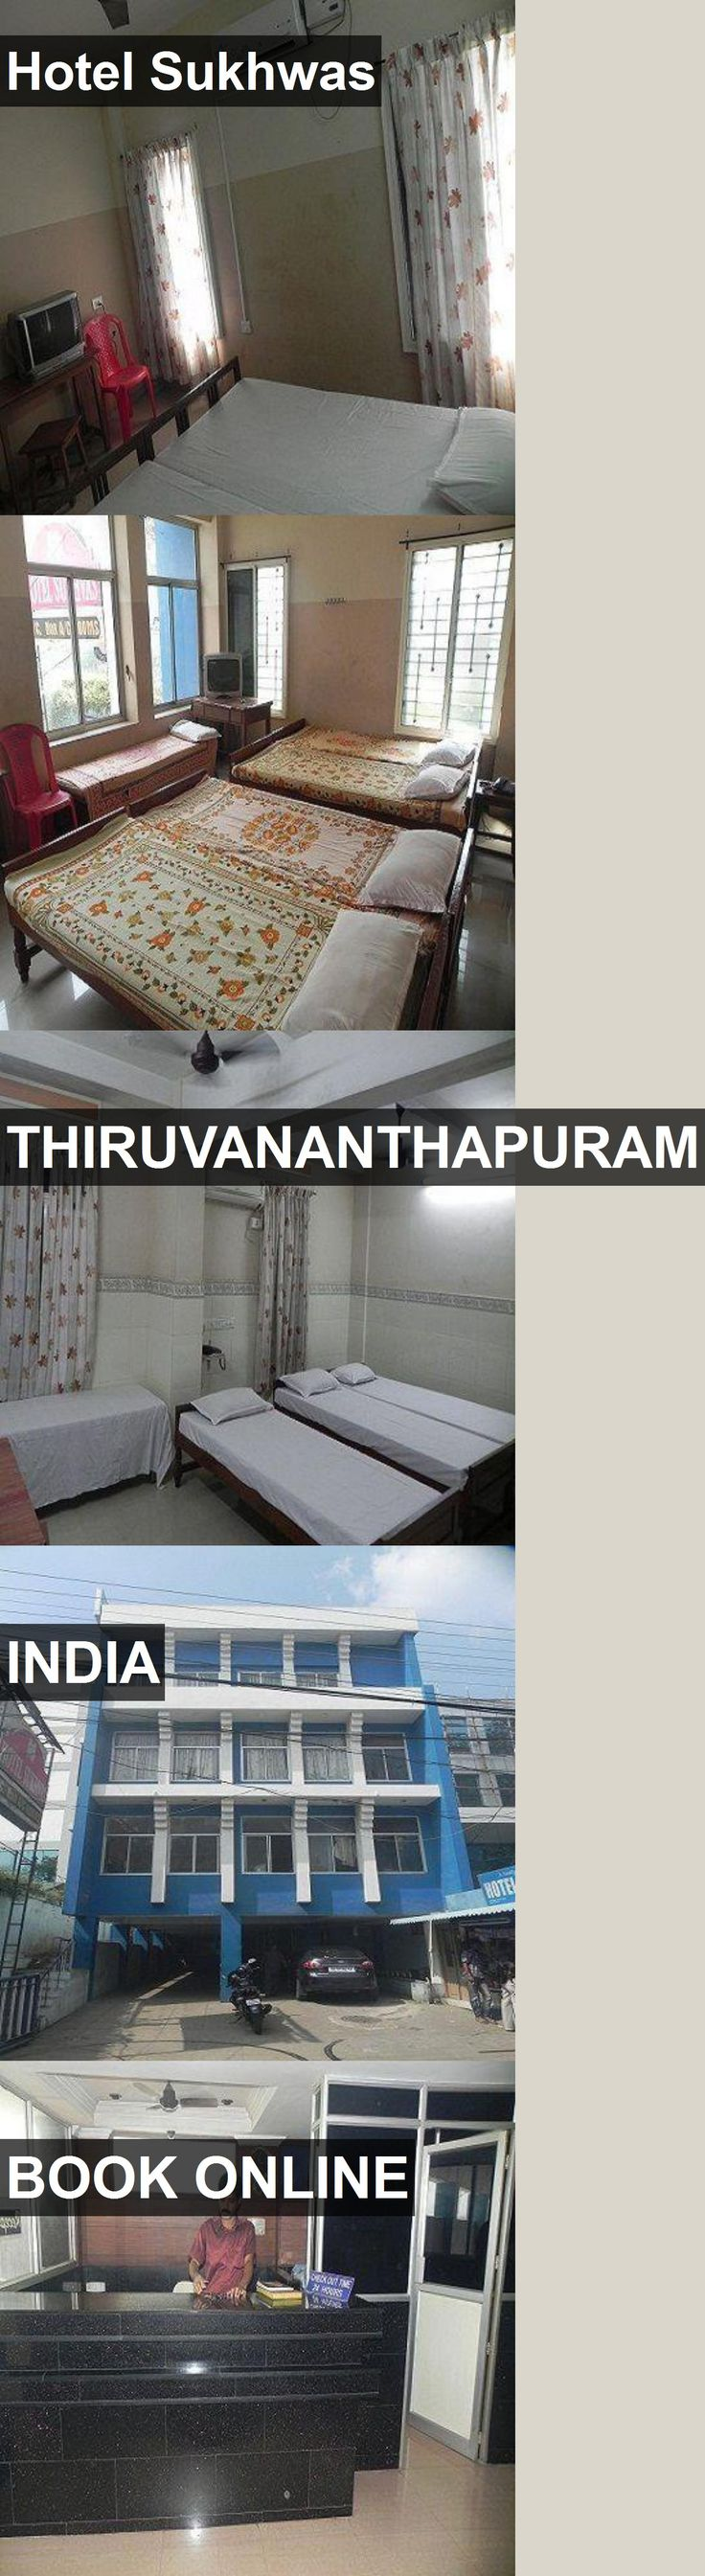 Hotel Sukhwas in Thiruvananthapuram, India. For more information, photos, reviews and best prices please follow the link. #India #Thiruvananthapuram #travel #vacation #hotel